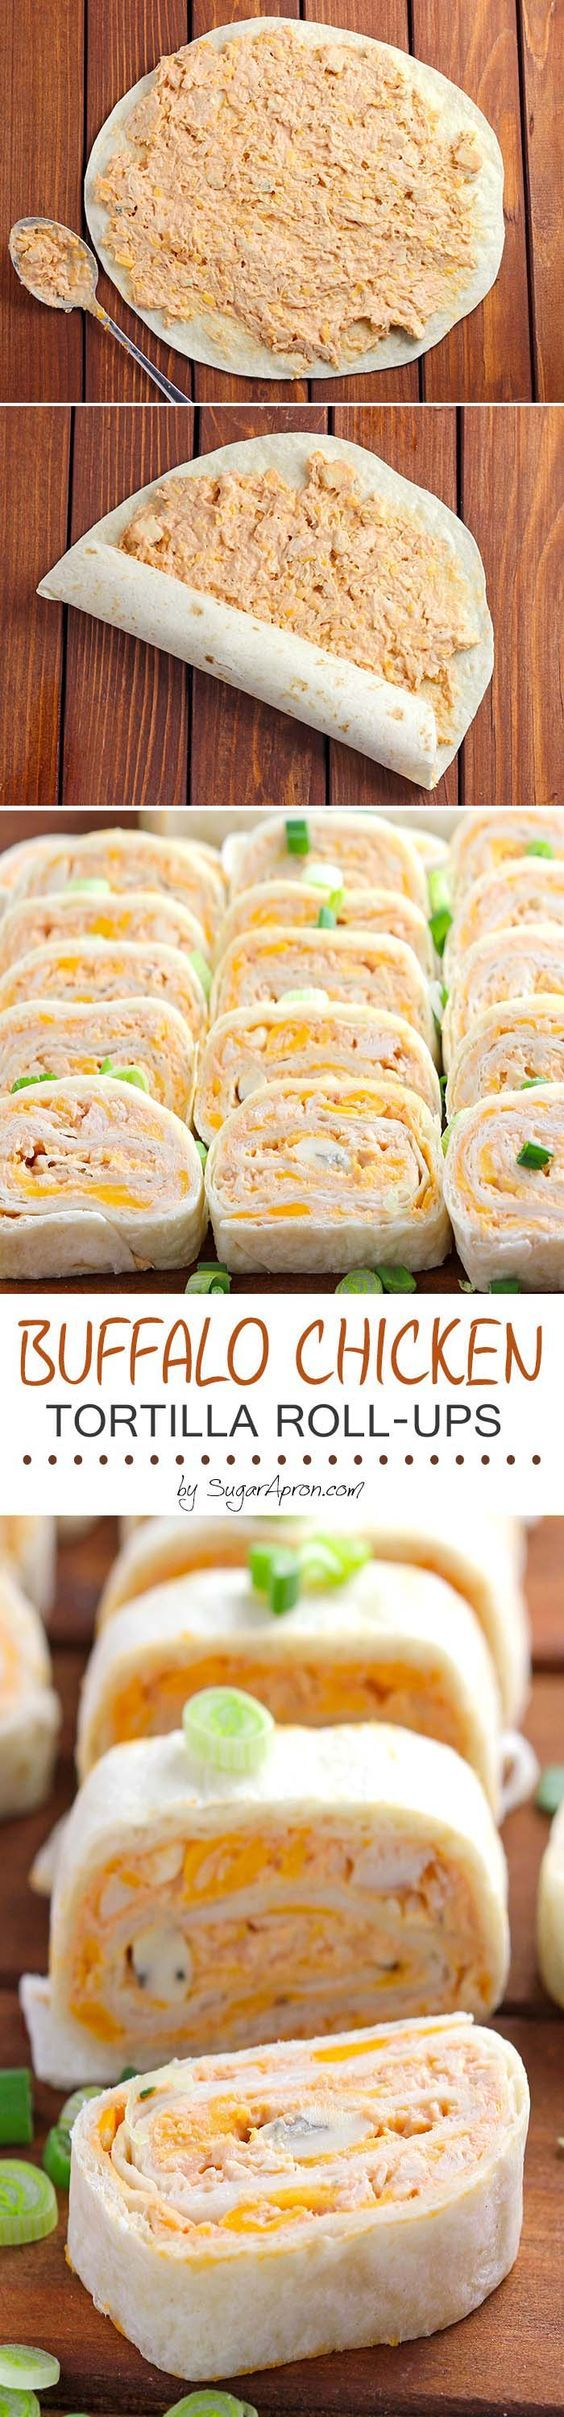 A Buffalo Chicken Tortilla Roll Ups recipe, perfect for game day... or any day!